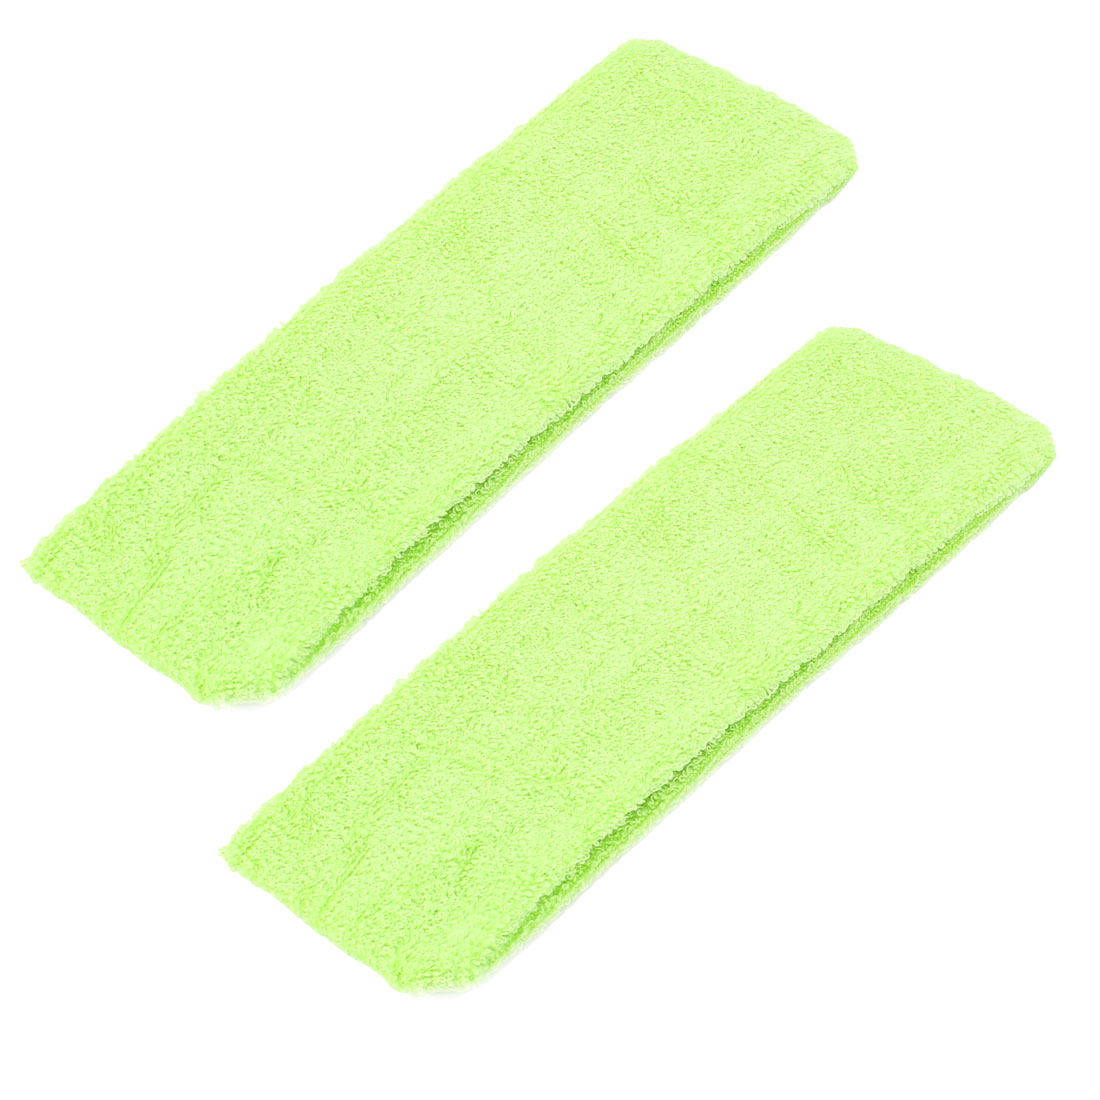 Women Yoga Sports Elastic Sweatband Headband Hair Band Green 2pcs